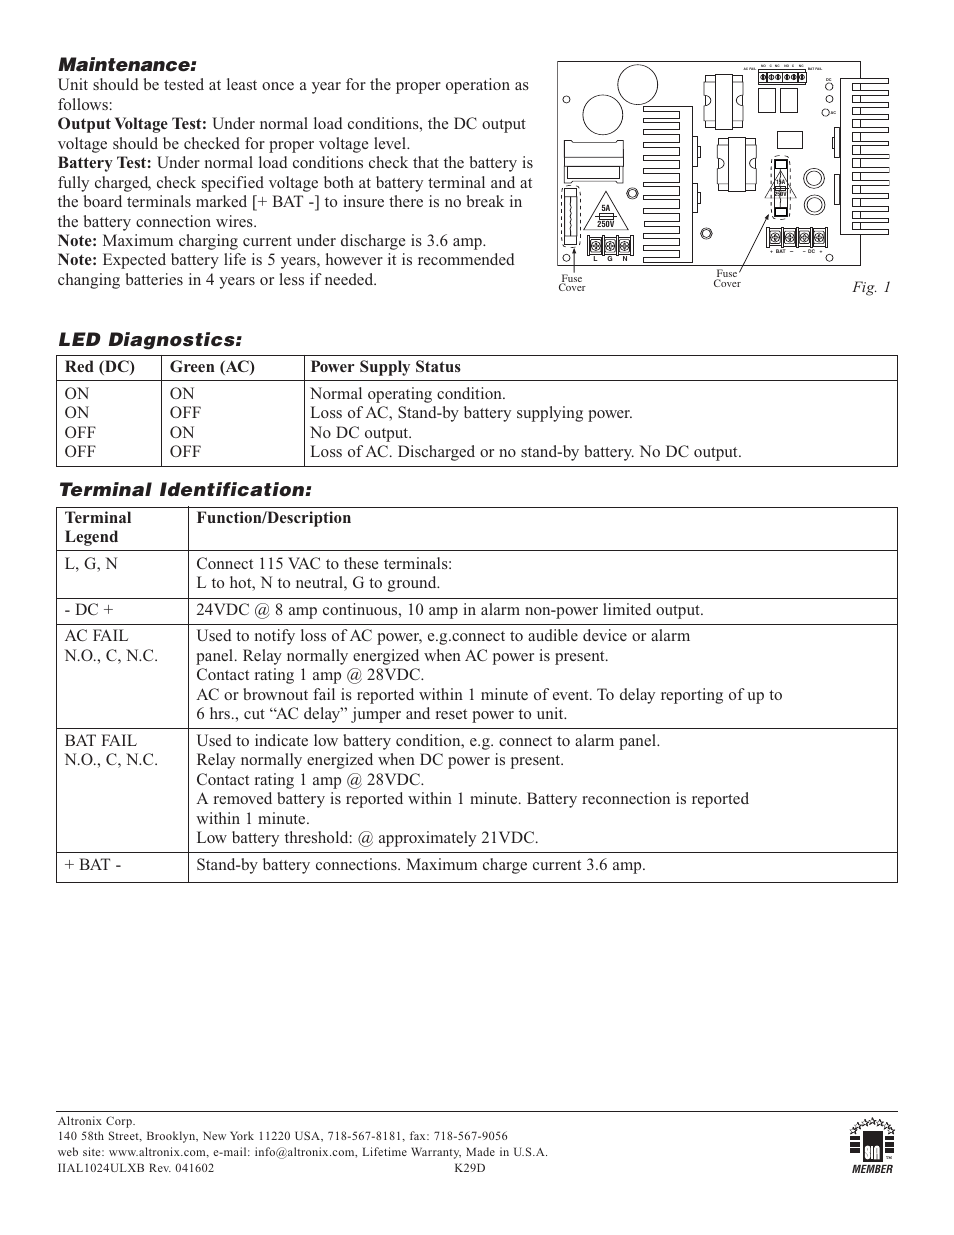 Maintenance Led Diagnostics Terminal Identification Altronix Timer Relay Wiring Diagram Al1024ulxb Installation Instructions User Manual Page 2